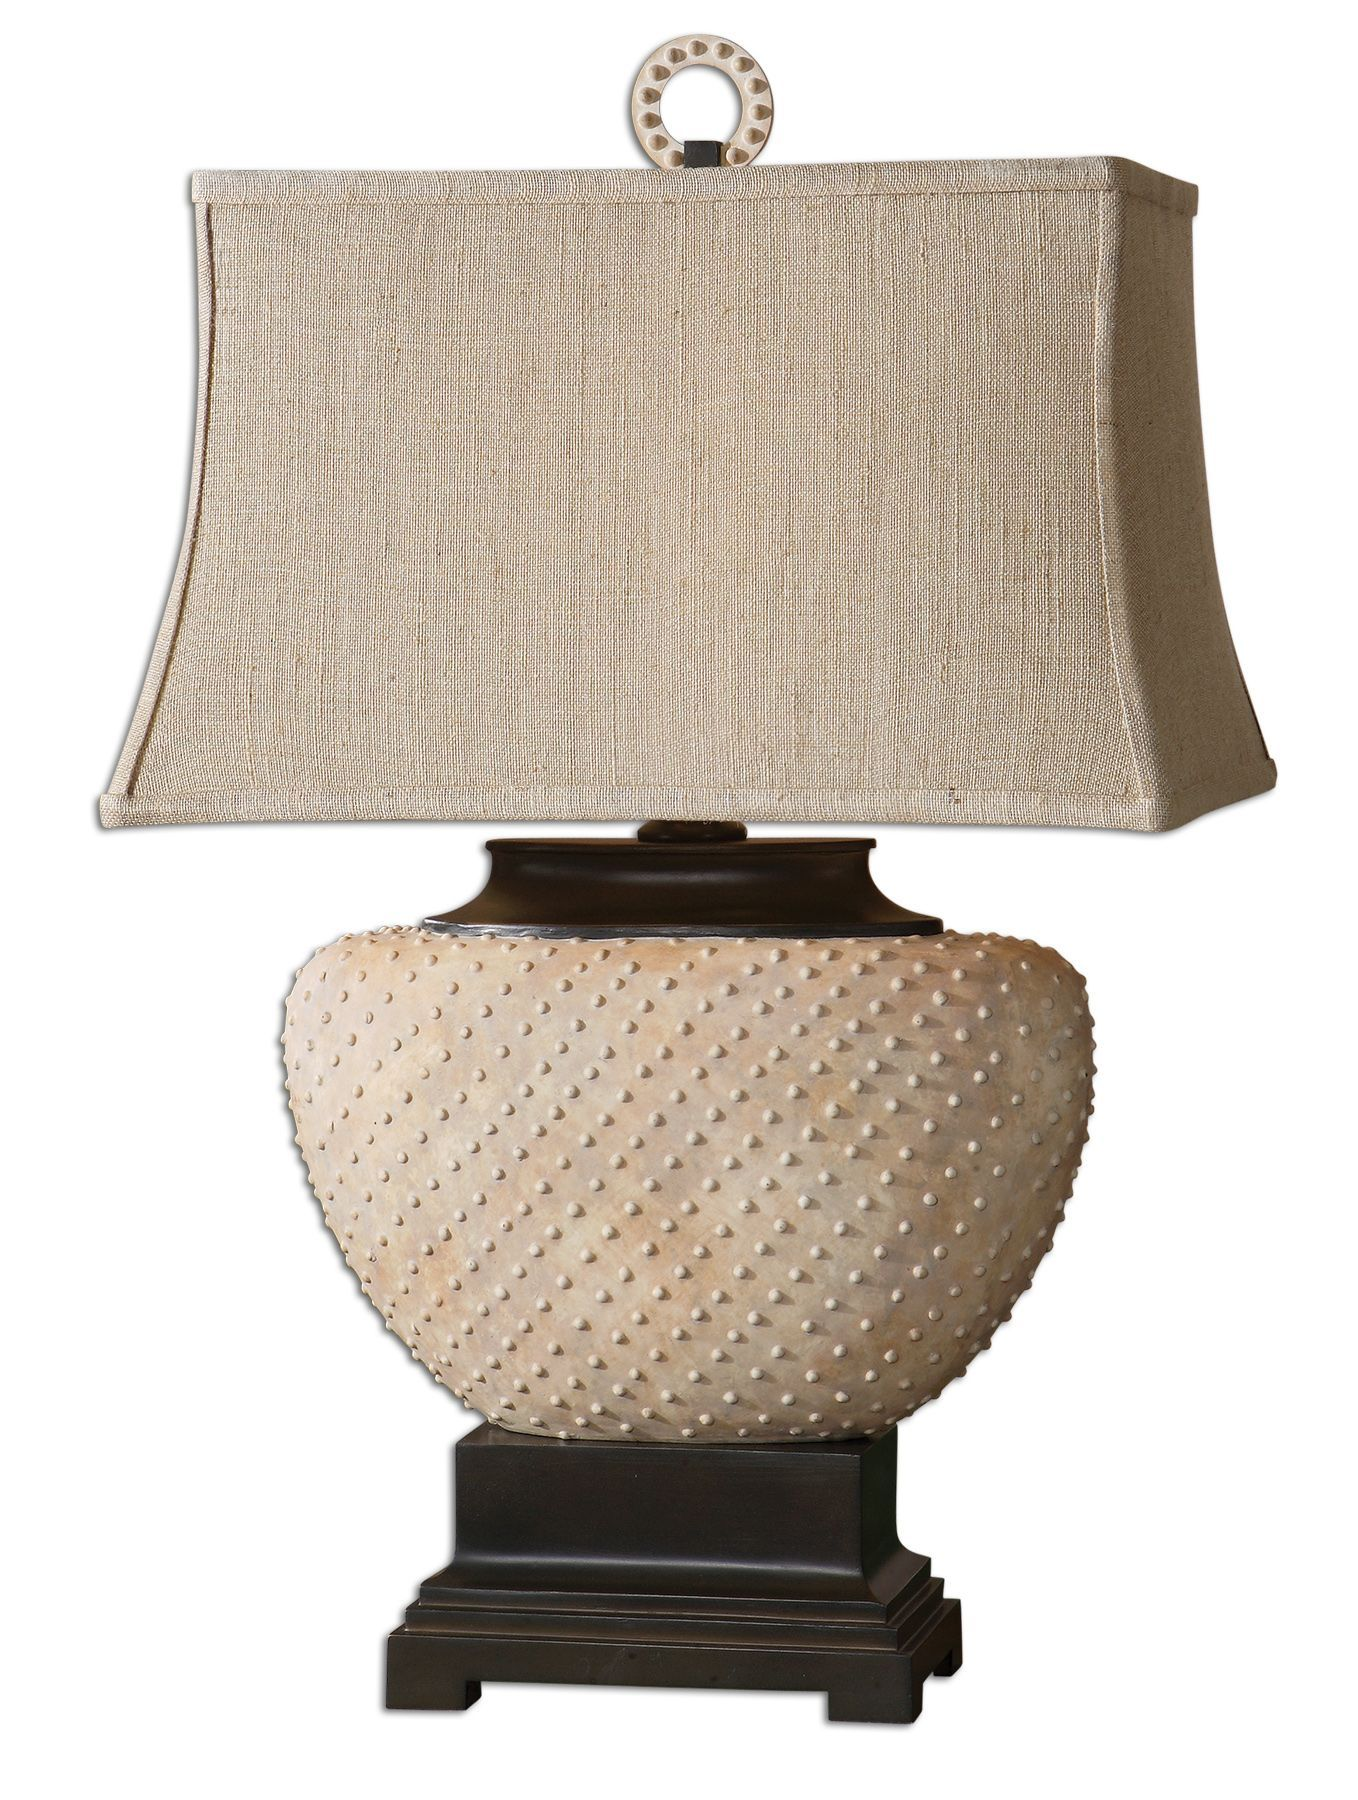 Uttermost Cumberland Ceramic Table Lamp 26533 Table Lamp